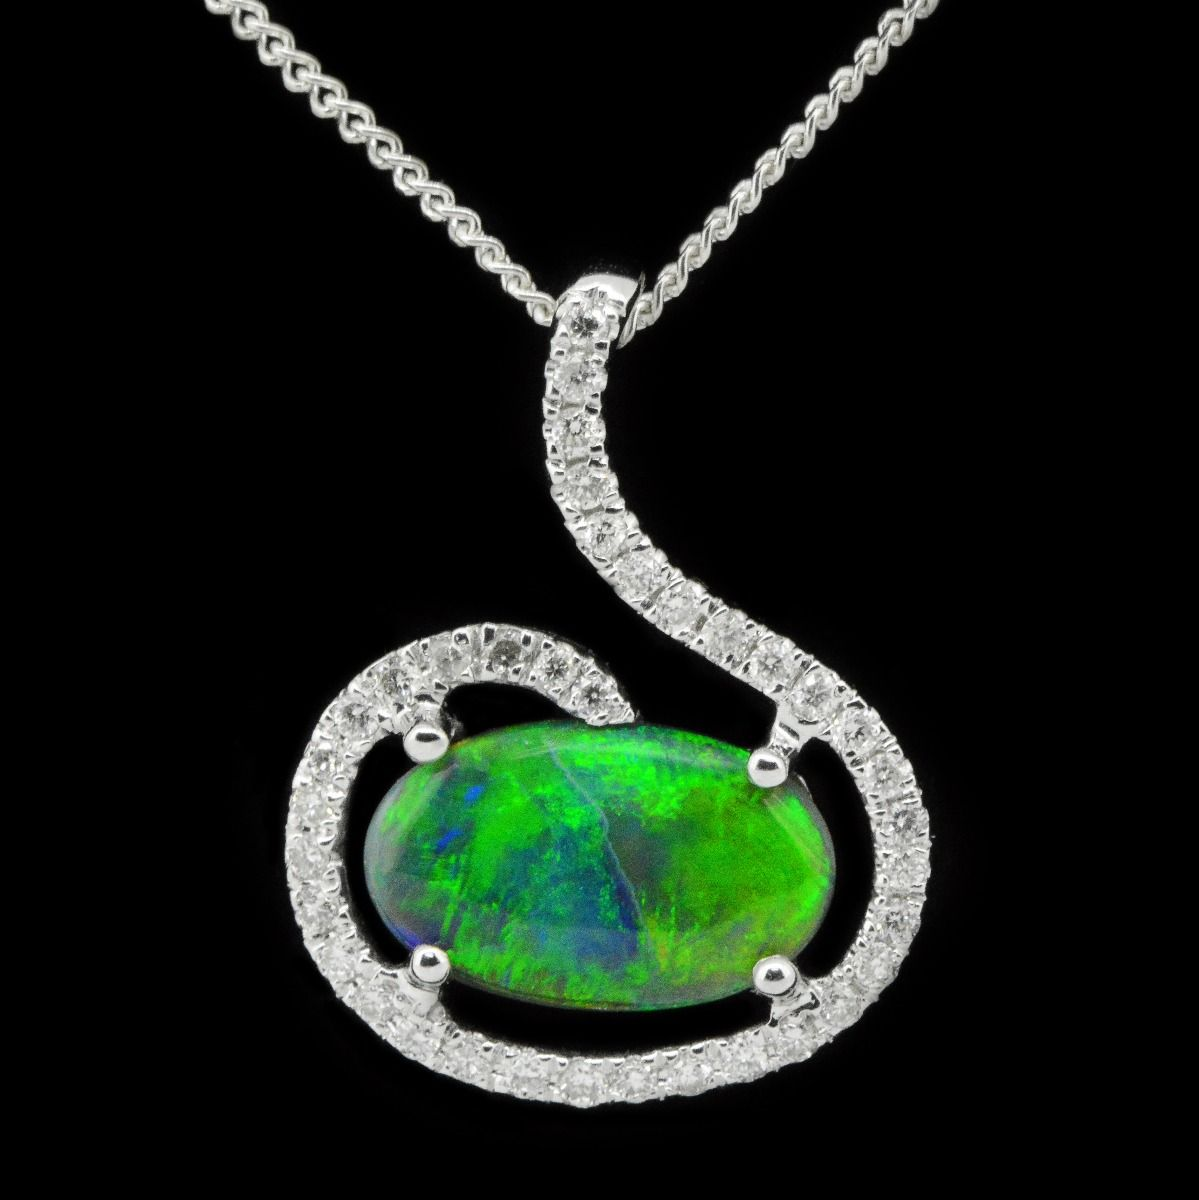 18ct white gold black opal pendant (10mmx6mm)